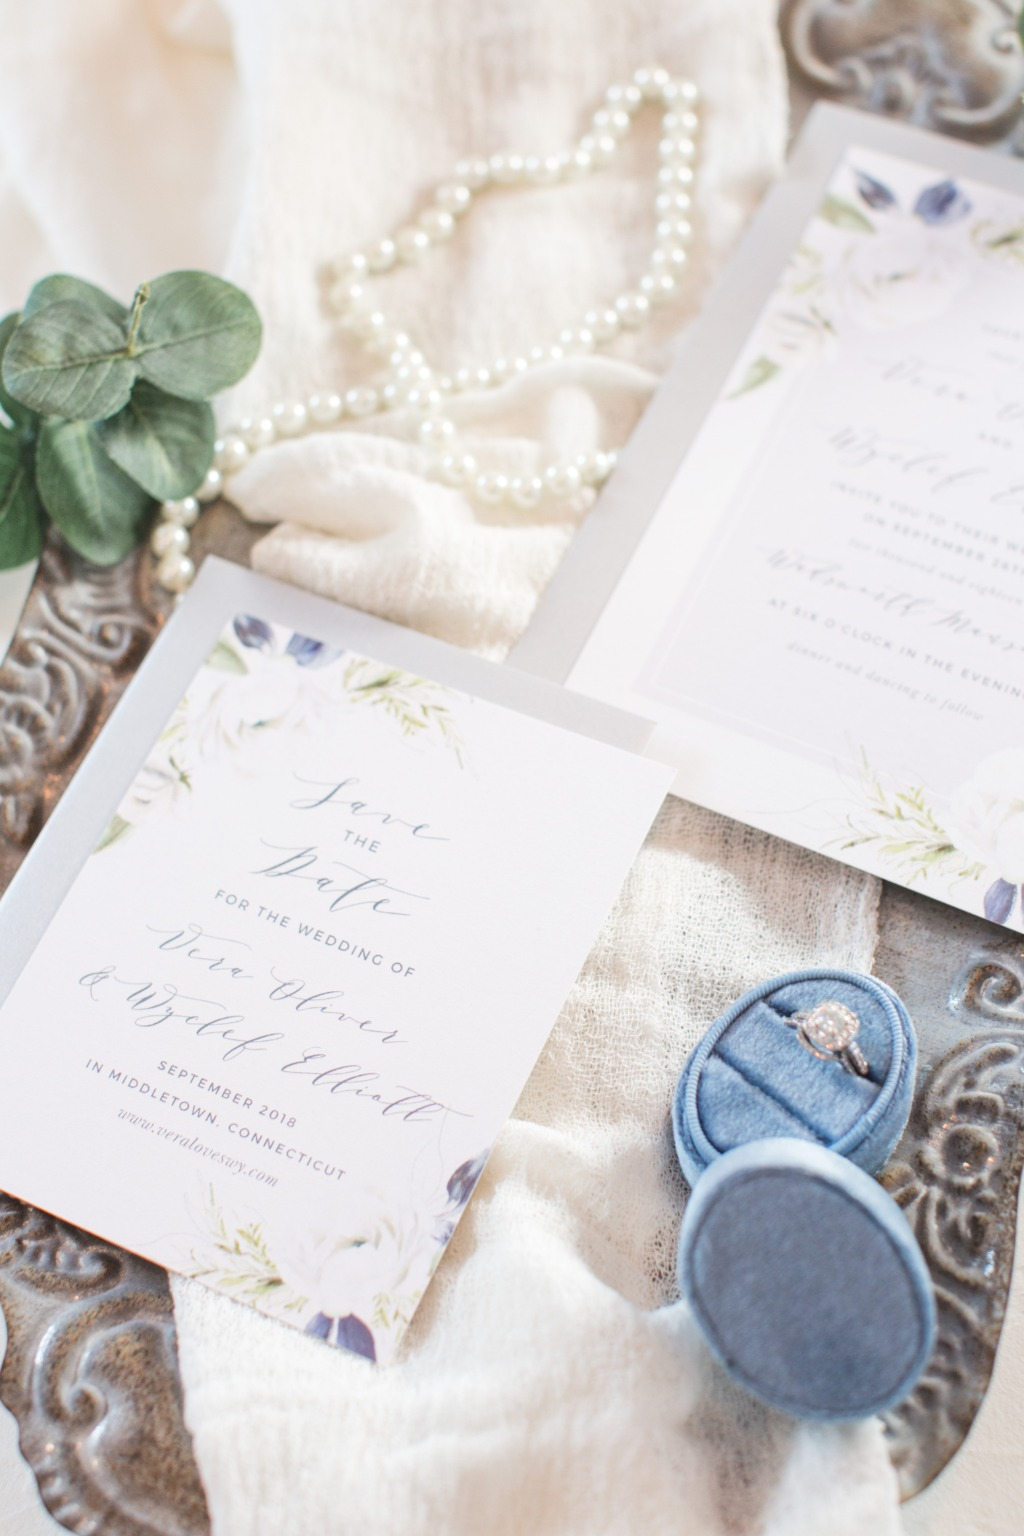 The Oil Paint Textured Wedding Invitations are the perfect way to make your wedding elegant and memorable.